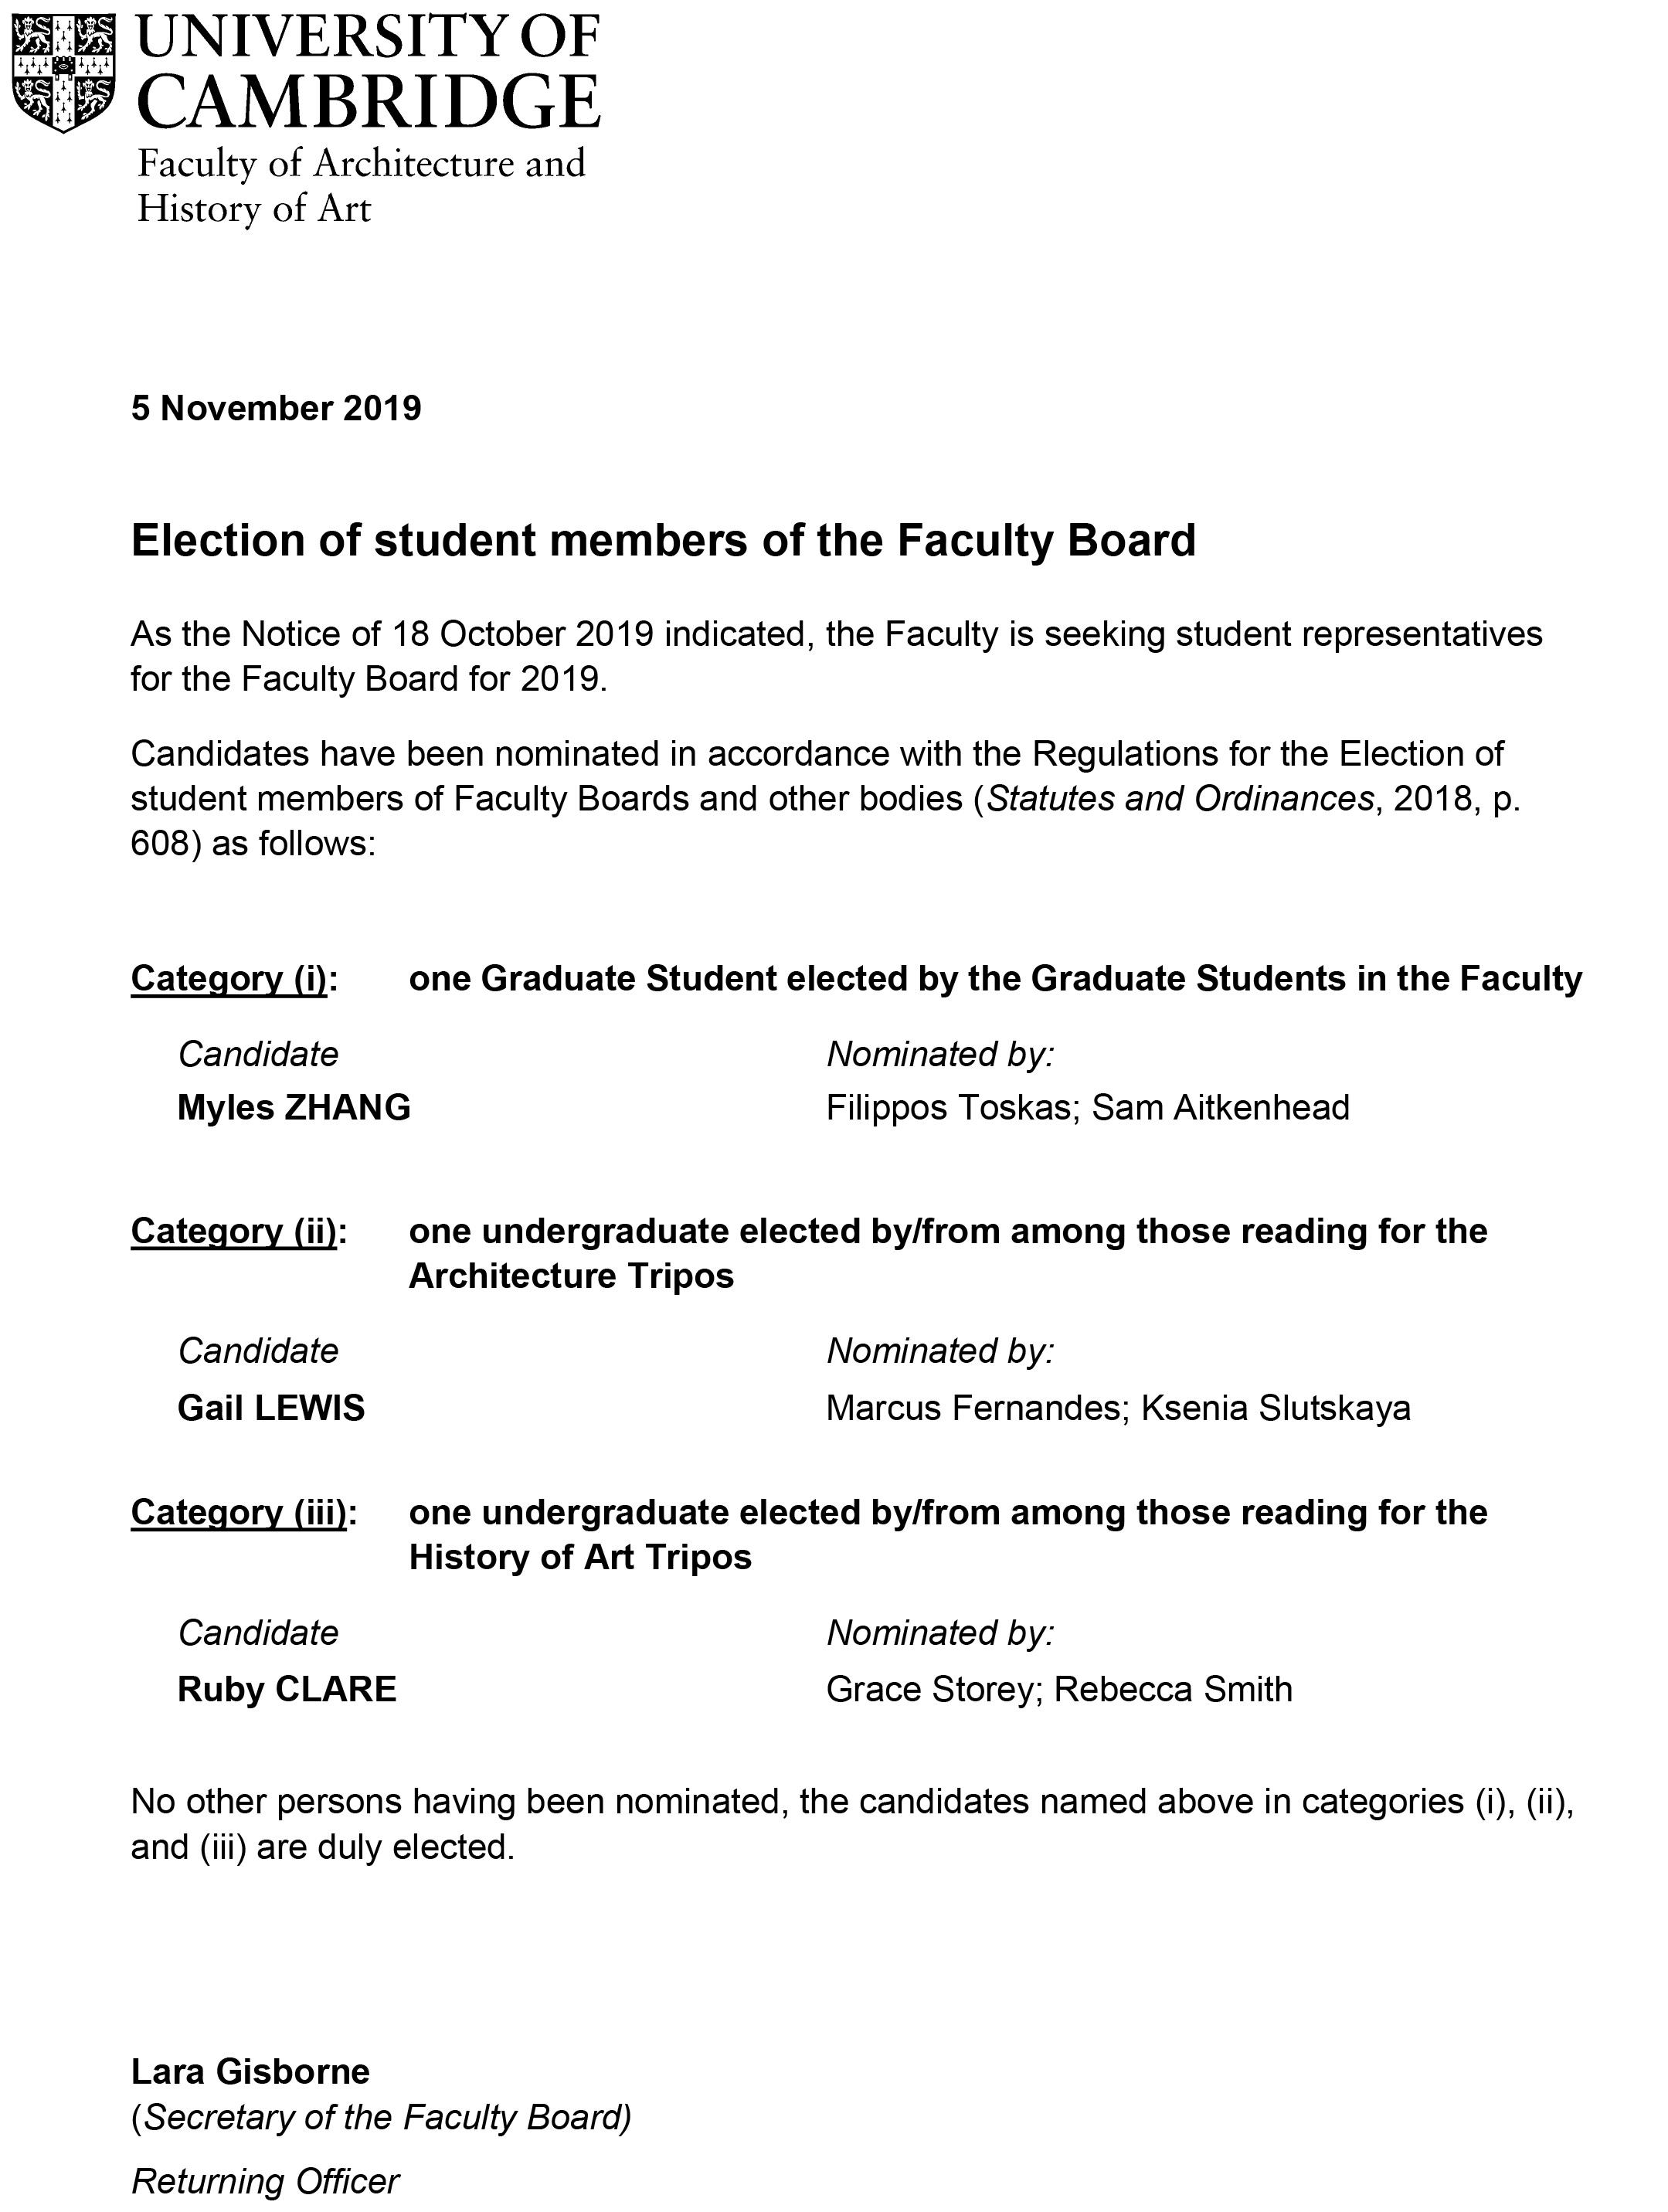 Election of student members